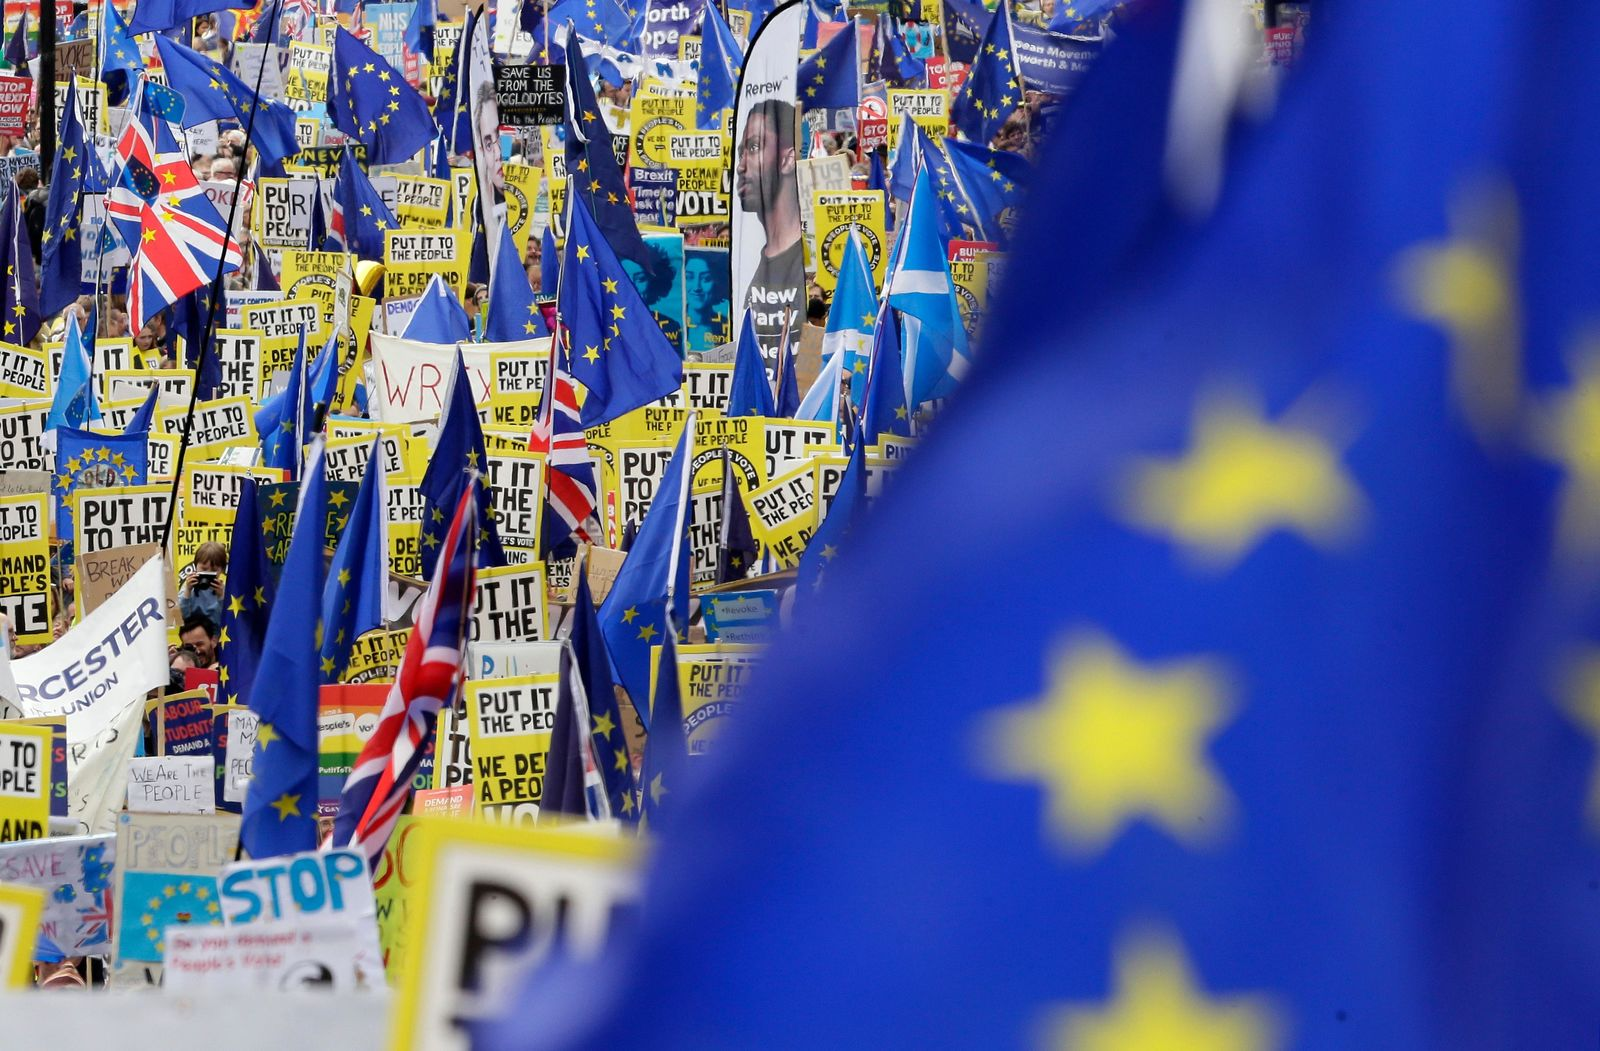 Demonstrators carry posters and flags during a Peoples Vote anti-Brexit march in London, Saturday, March 23, 2019.{ } (AP Photo/Tim Ireland)